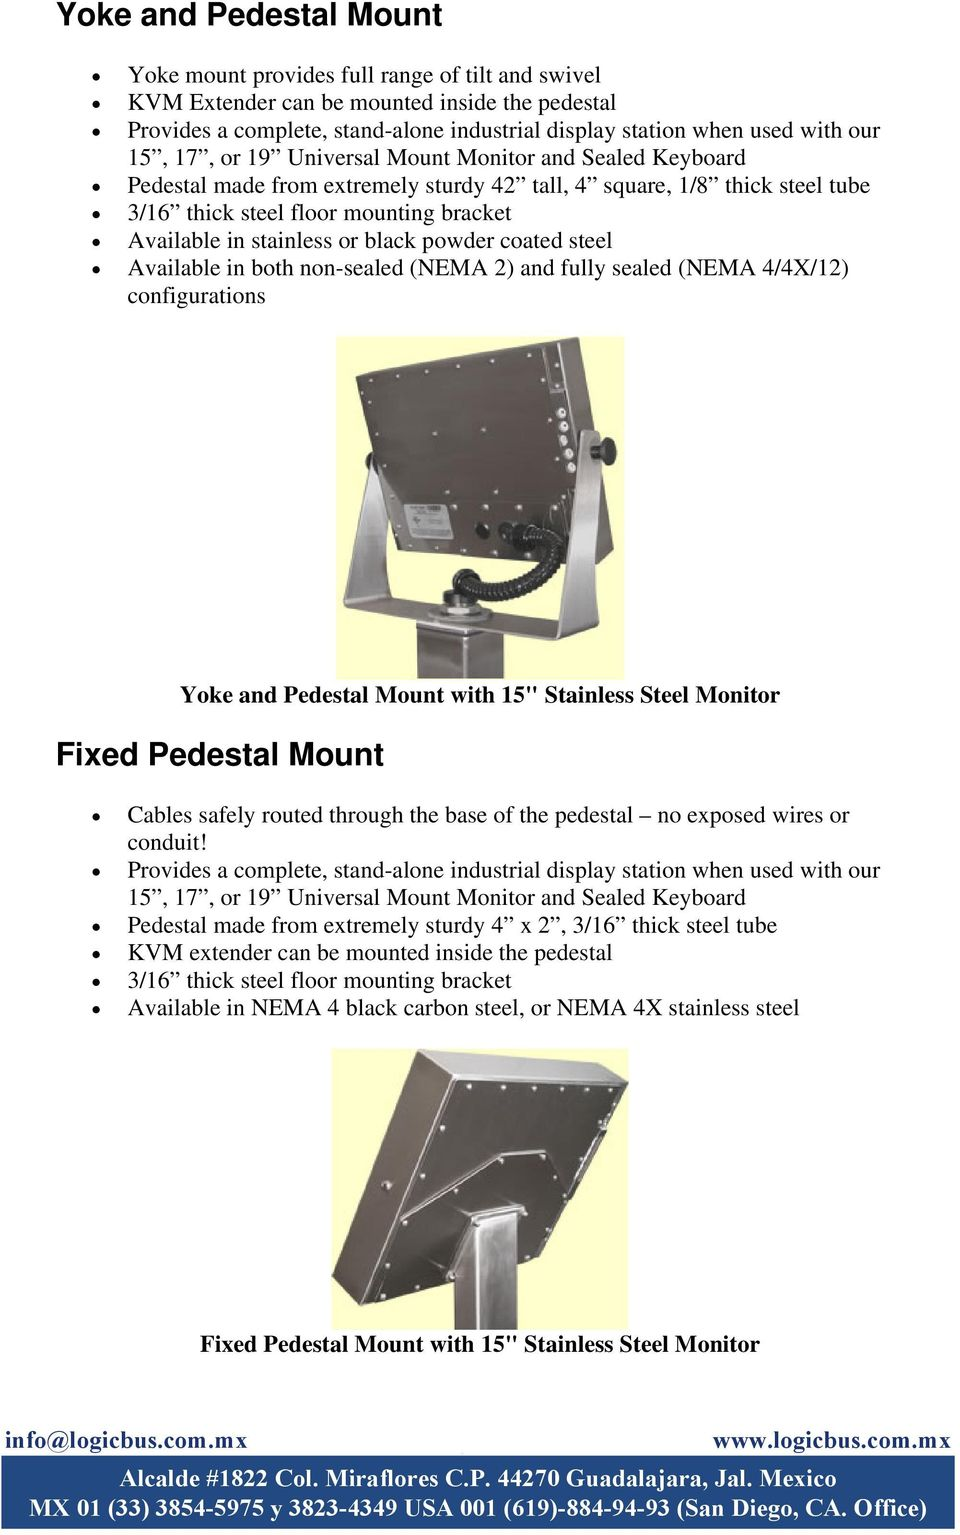 "stainless or black powder coated steel Available in both non-sealed (NEMA 2) and fully sealed (NEMA 4/4X/12) Yoke and Pedestal Mount with 15"" Stainless Steel Monitor Fixed Pedestal Mount Cables"